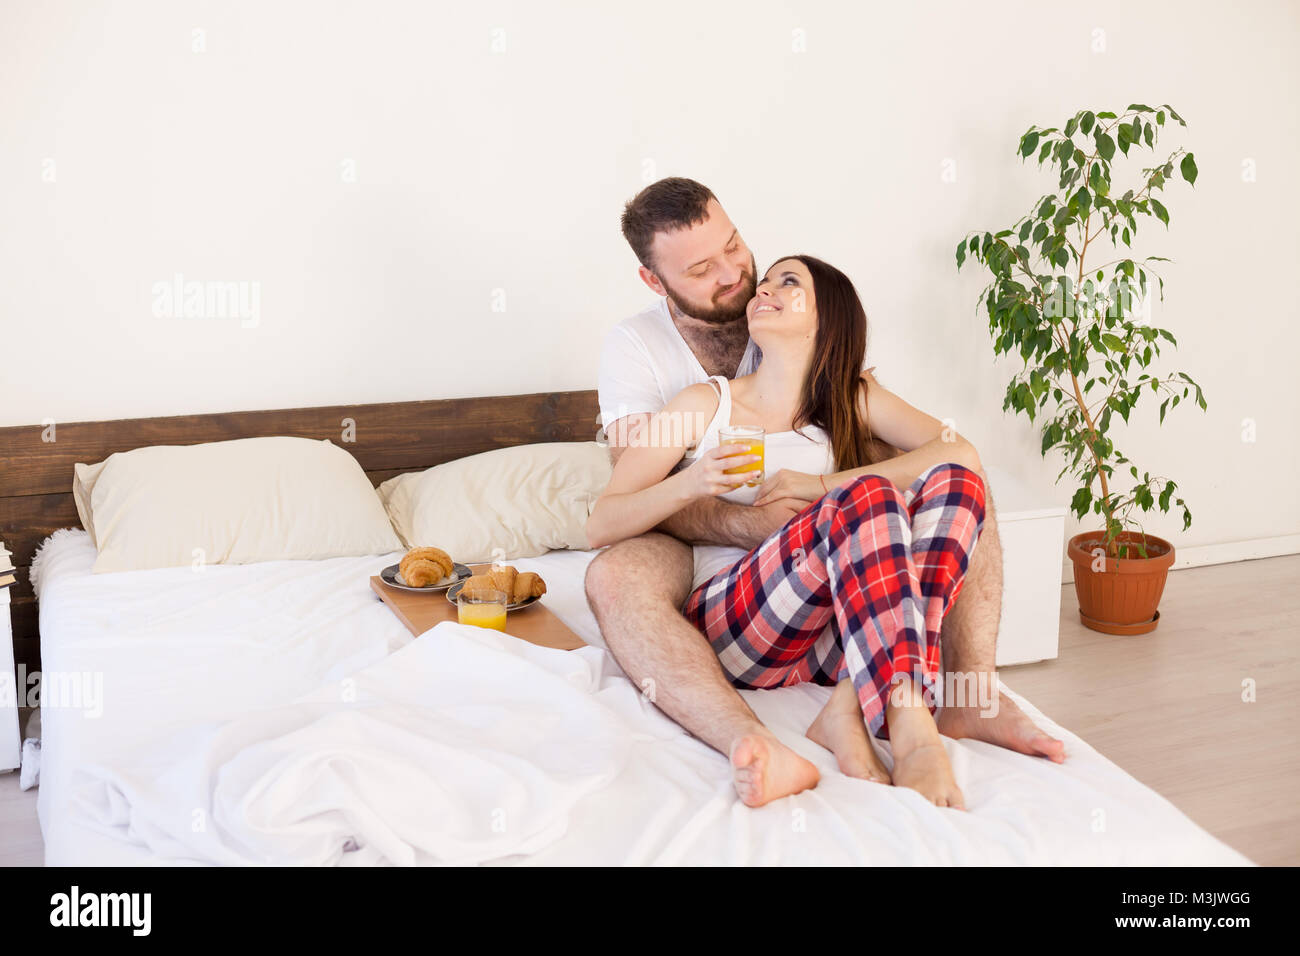 man and woman breakfast in bed - Stock Image